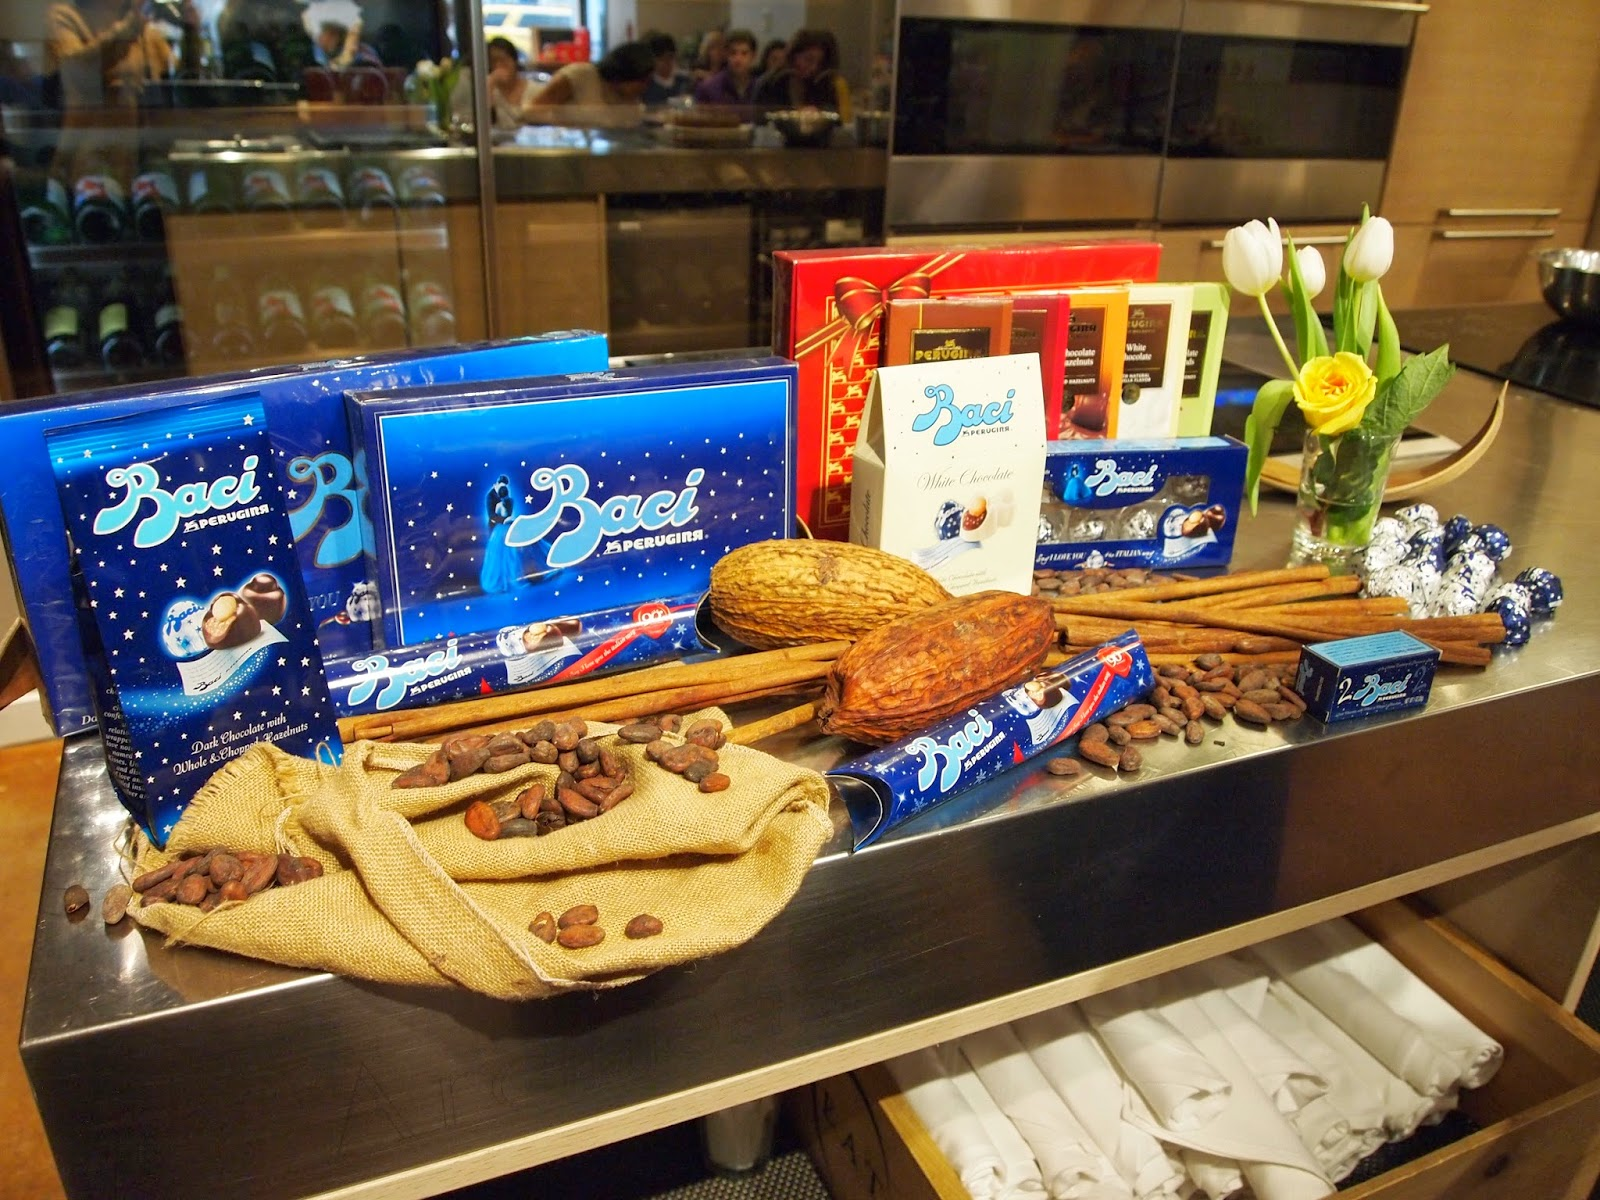 Chicago Foodie Sisters: Eataly to host Perugina chocolate ...